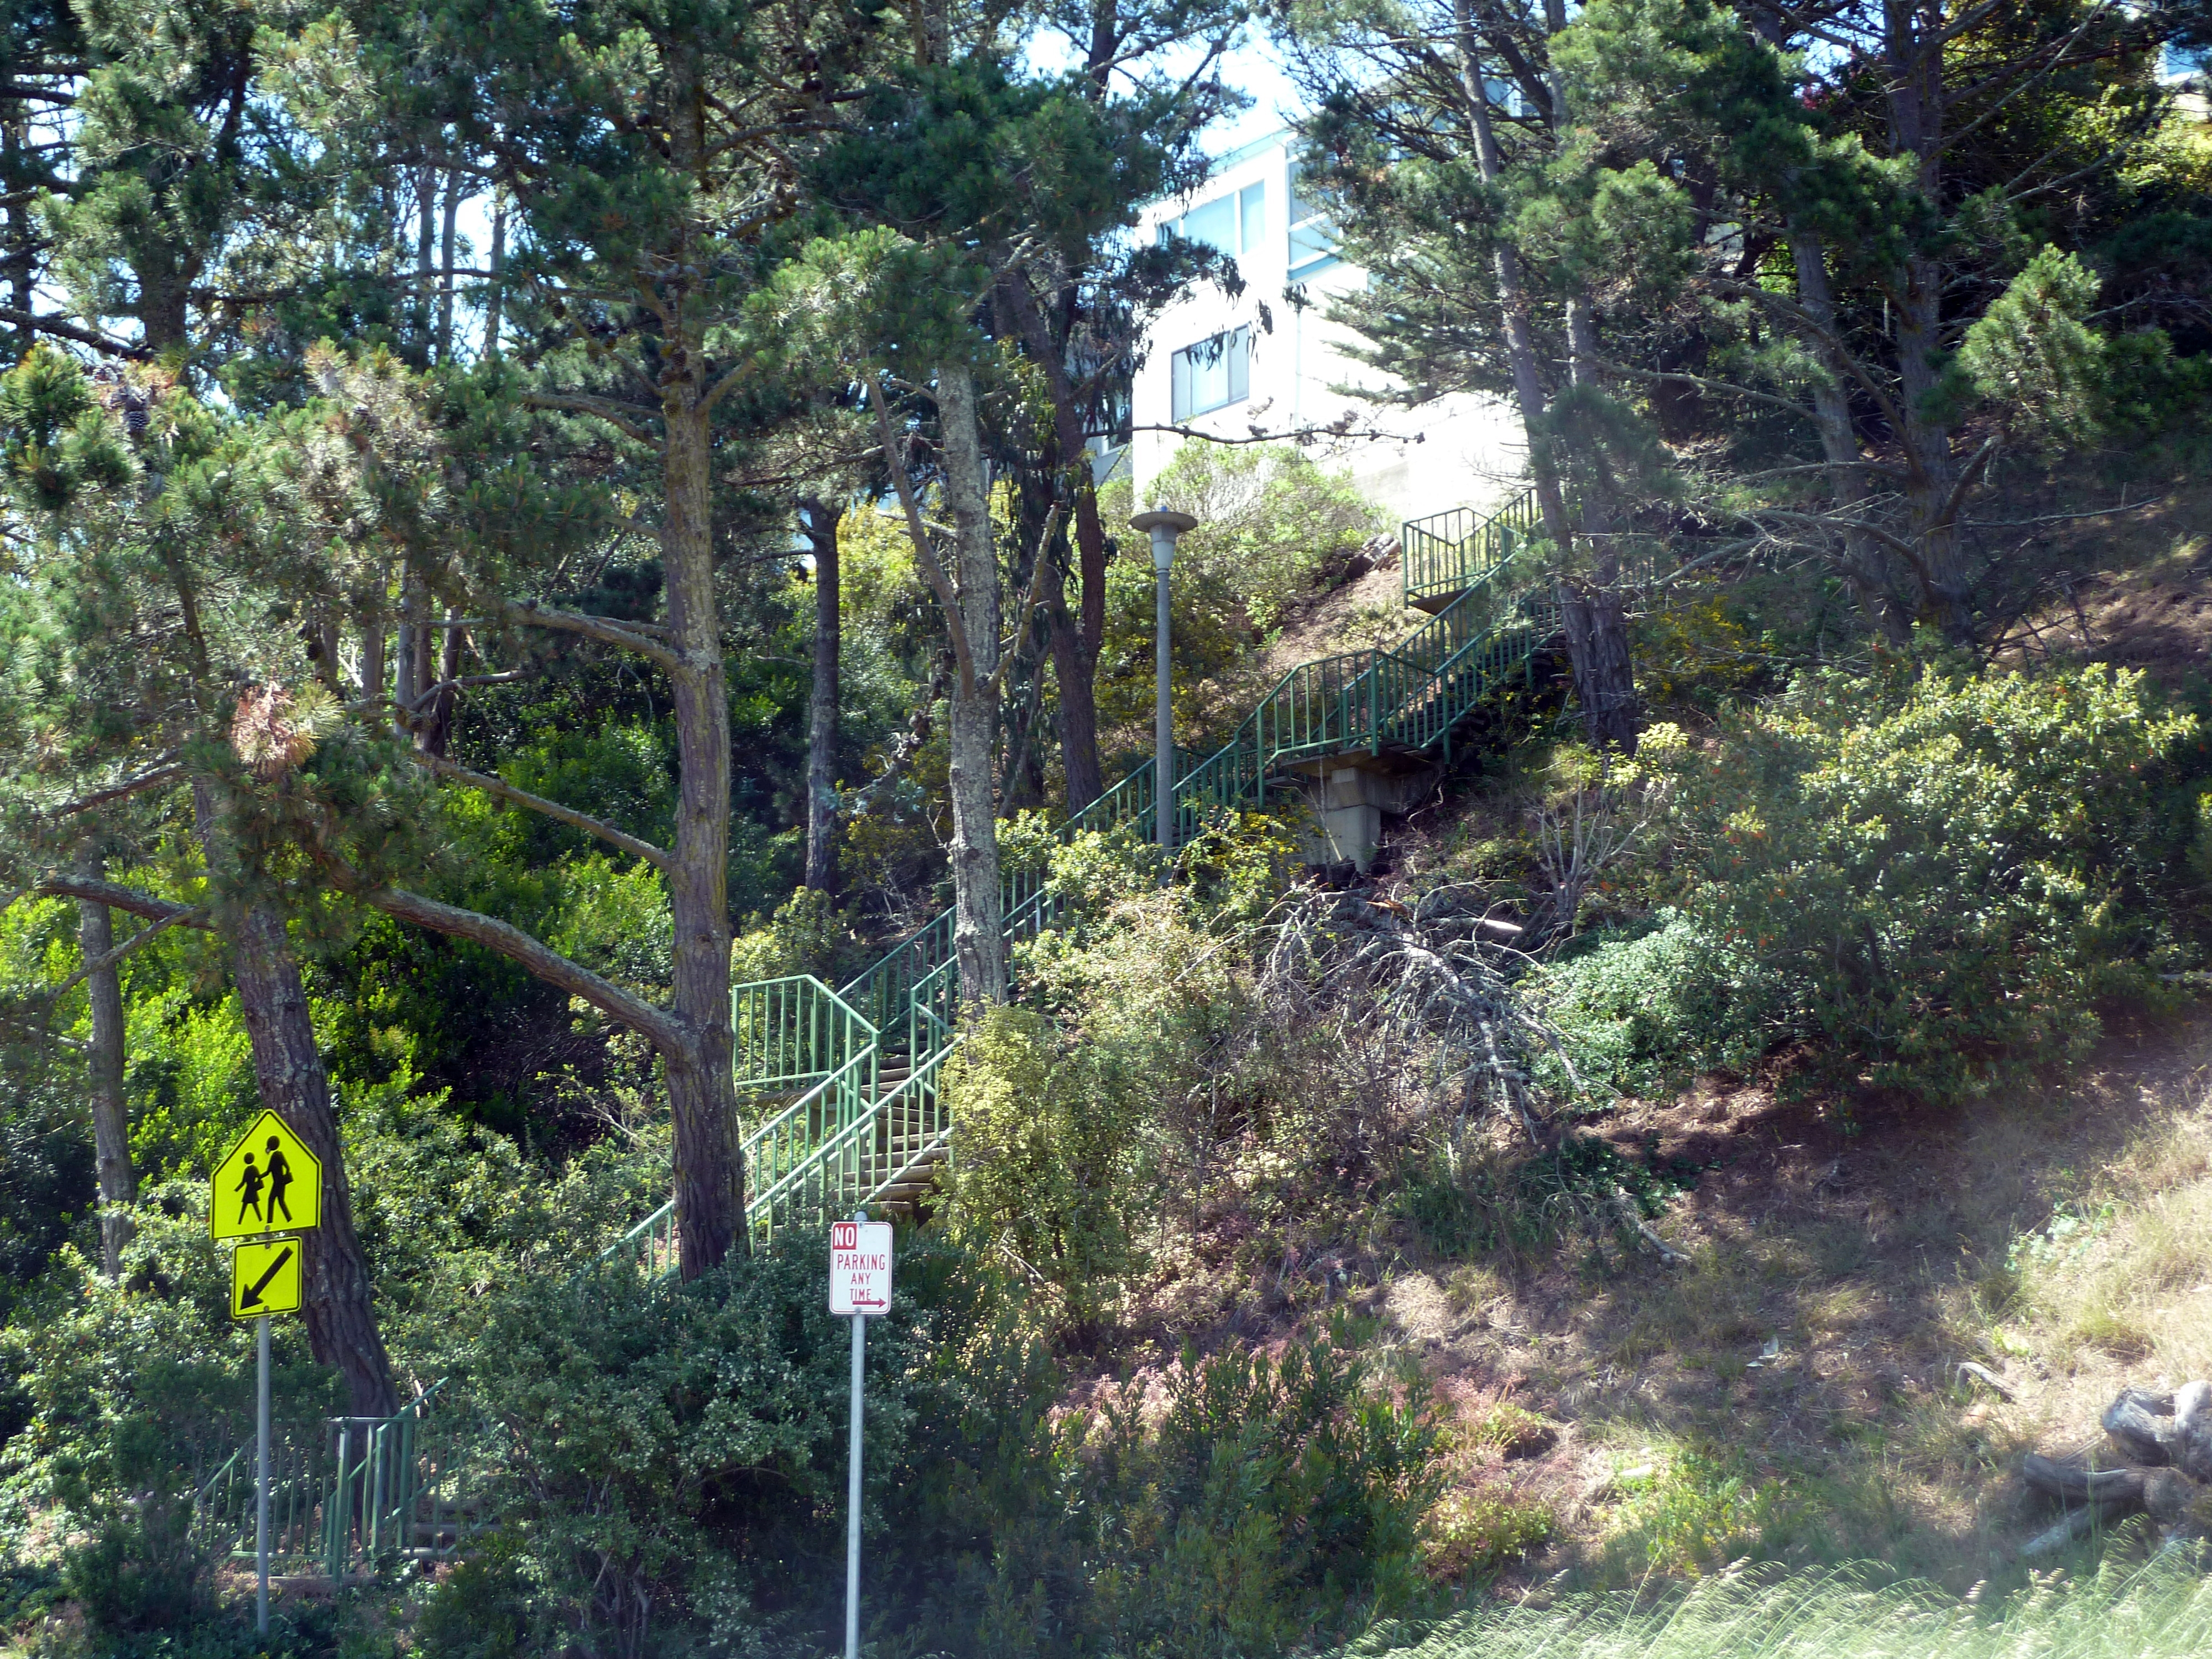 San Francisco's ambitious pedestrians will find that most of the city's hilly, terraced neighborhood streets are linked by public stairwells, often tucked inconspicuously between and behind houses, or under thick tree cover- like this one in the Forest Knolls District.  (photo by D. Speredelozzi)